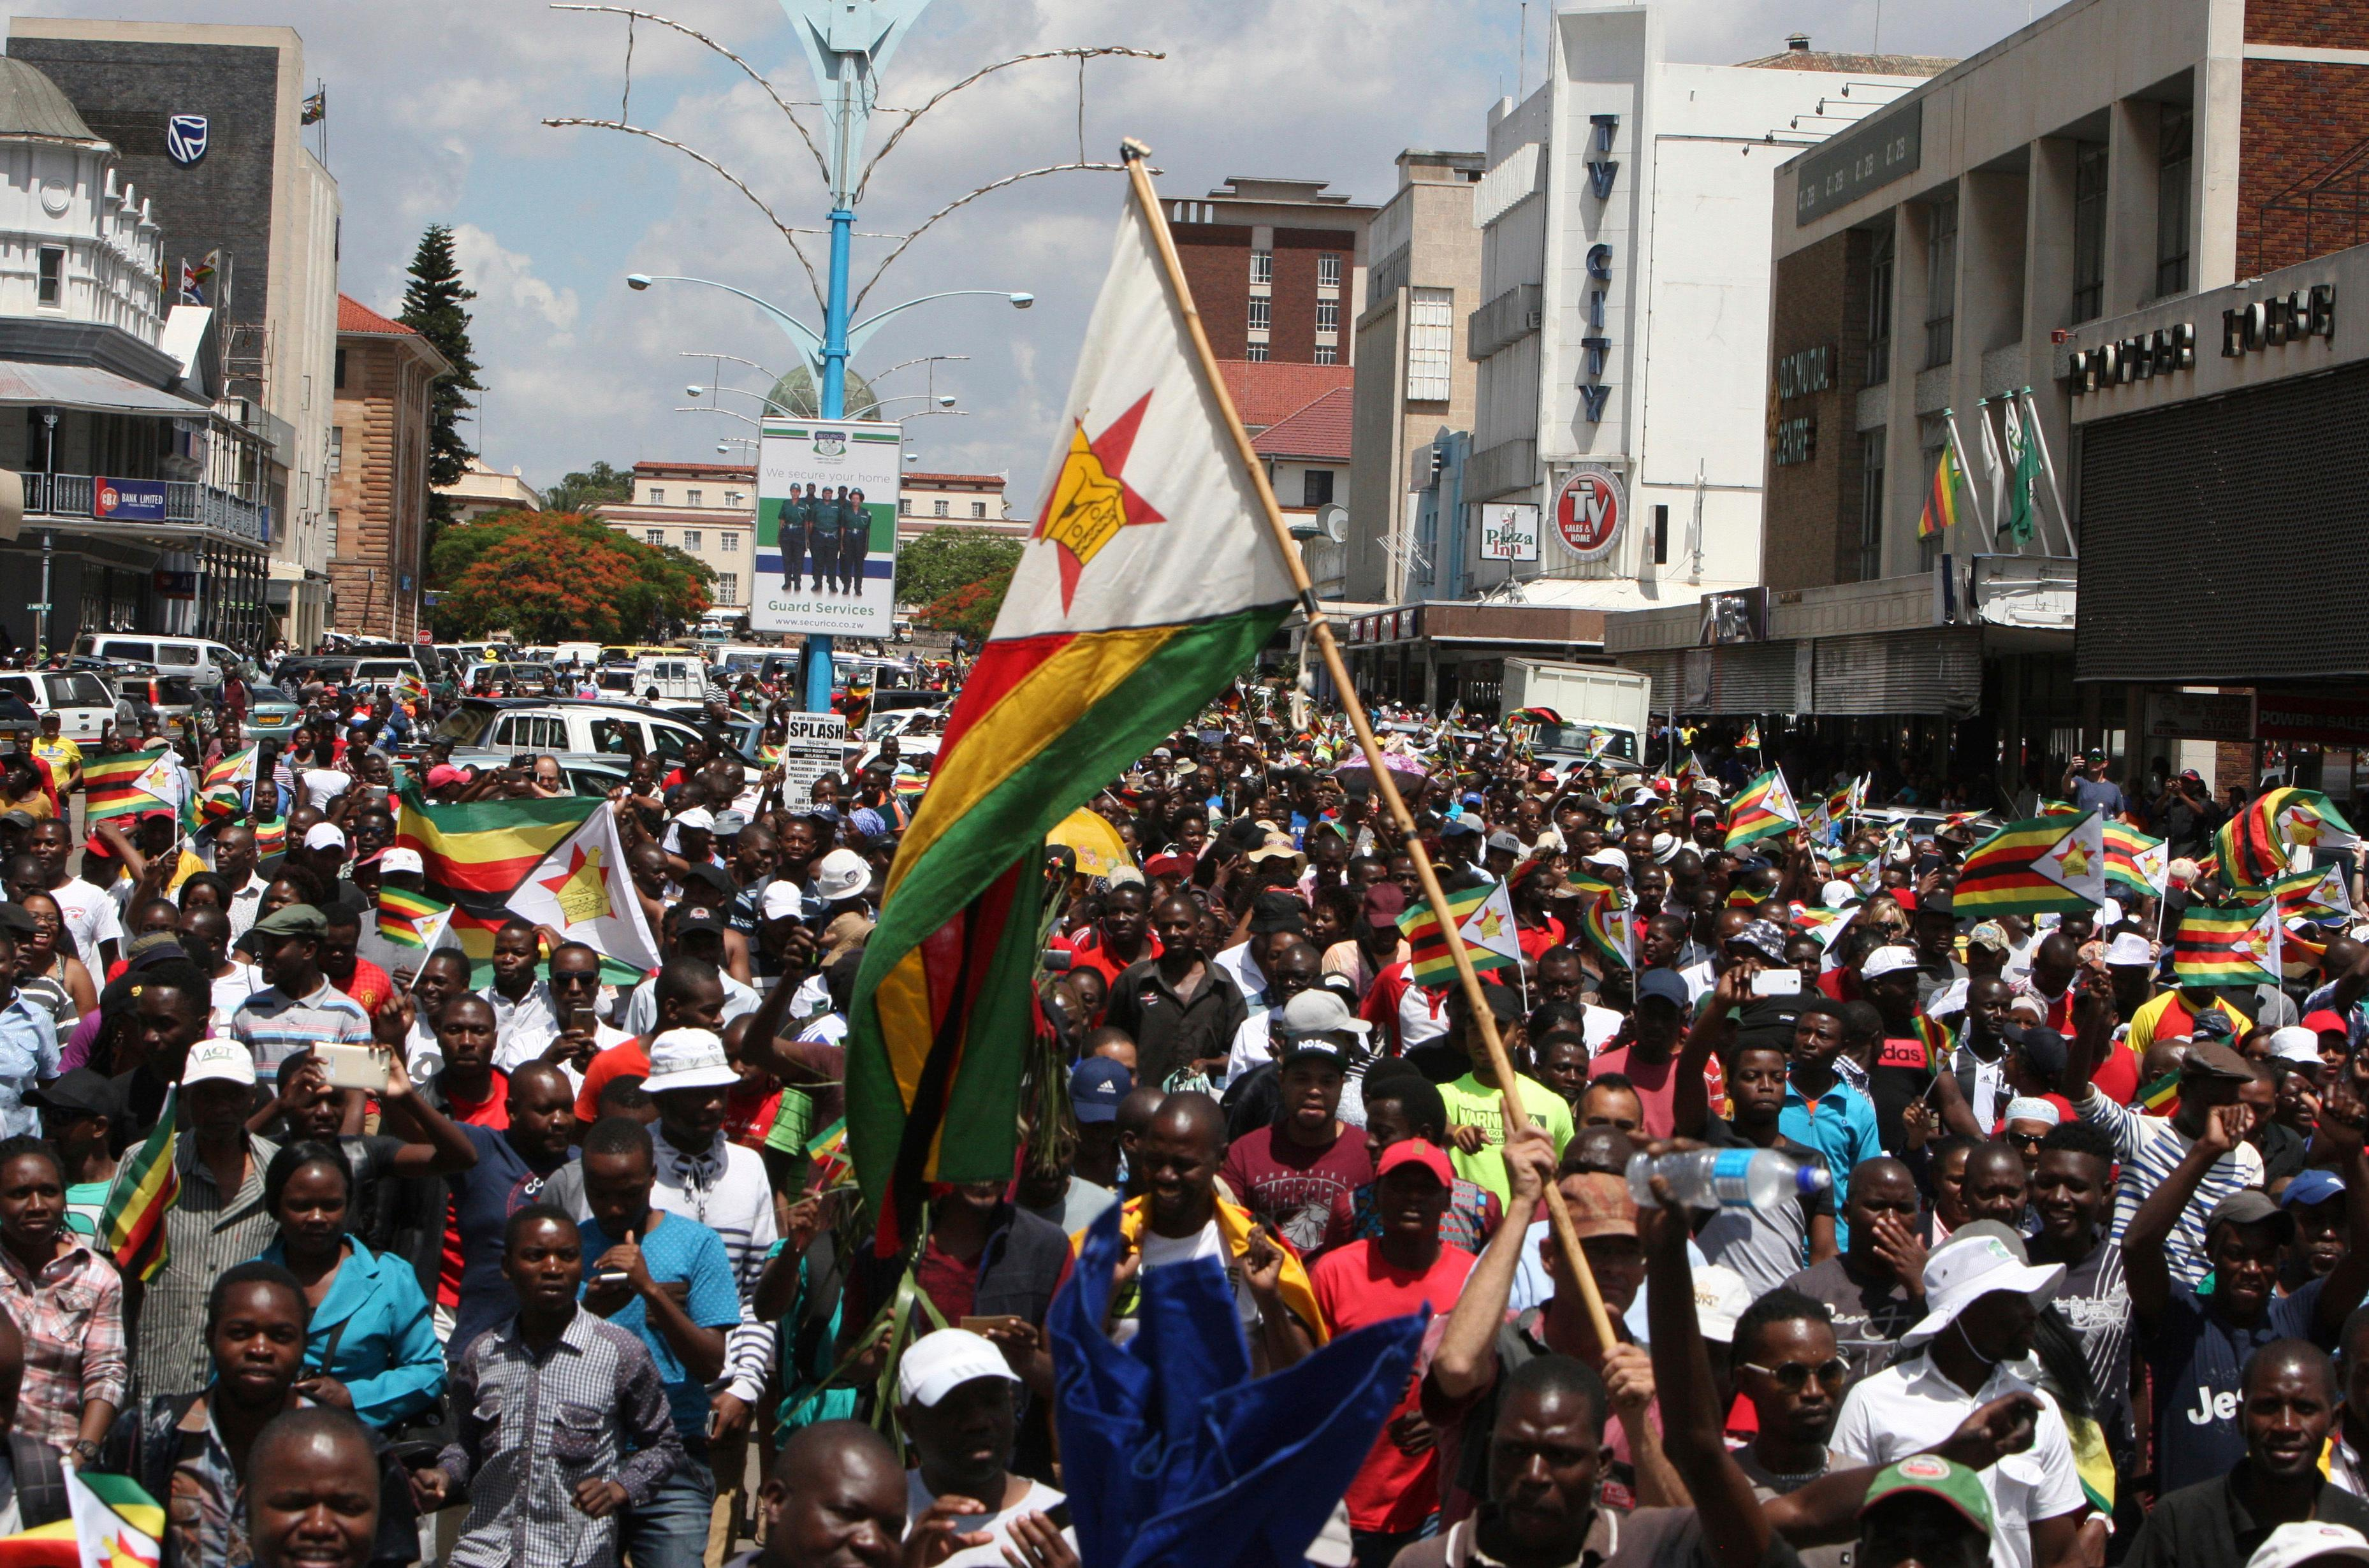 Hundreds gather in Bulawayo, Zimbabwe, Saturday, Nov. 18, 2017 to demand the departure of President Robert Mugabe after nearly four decades in power. (AP Photo/Lucky Tshuma)